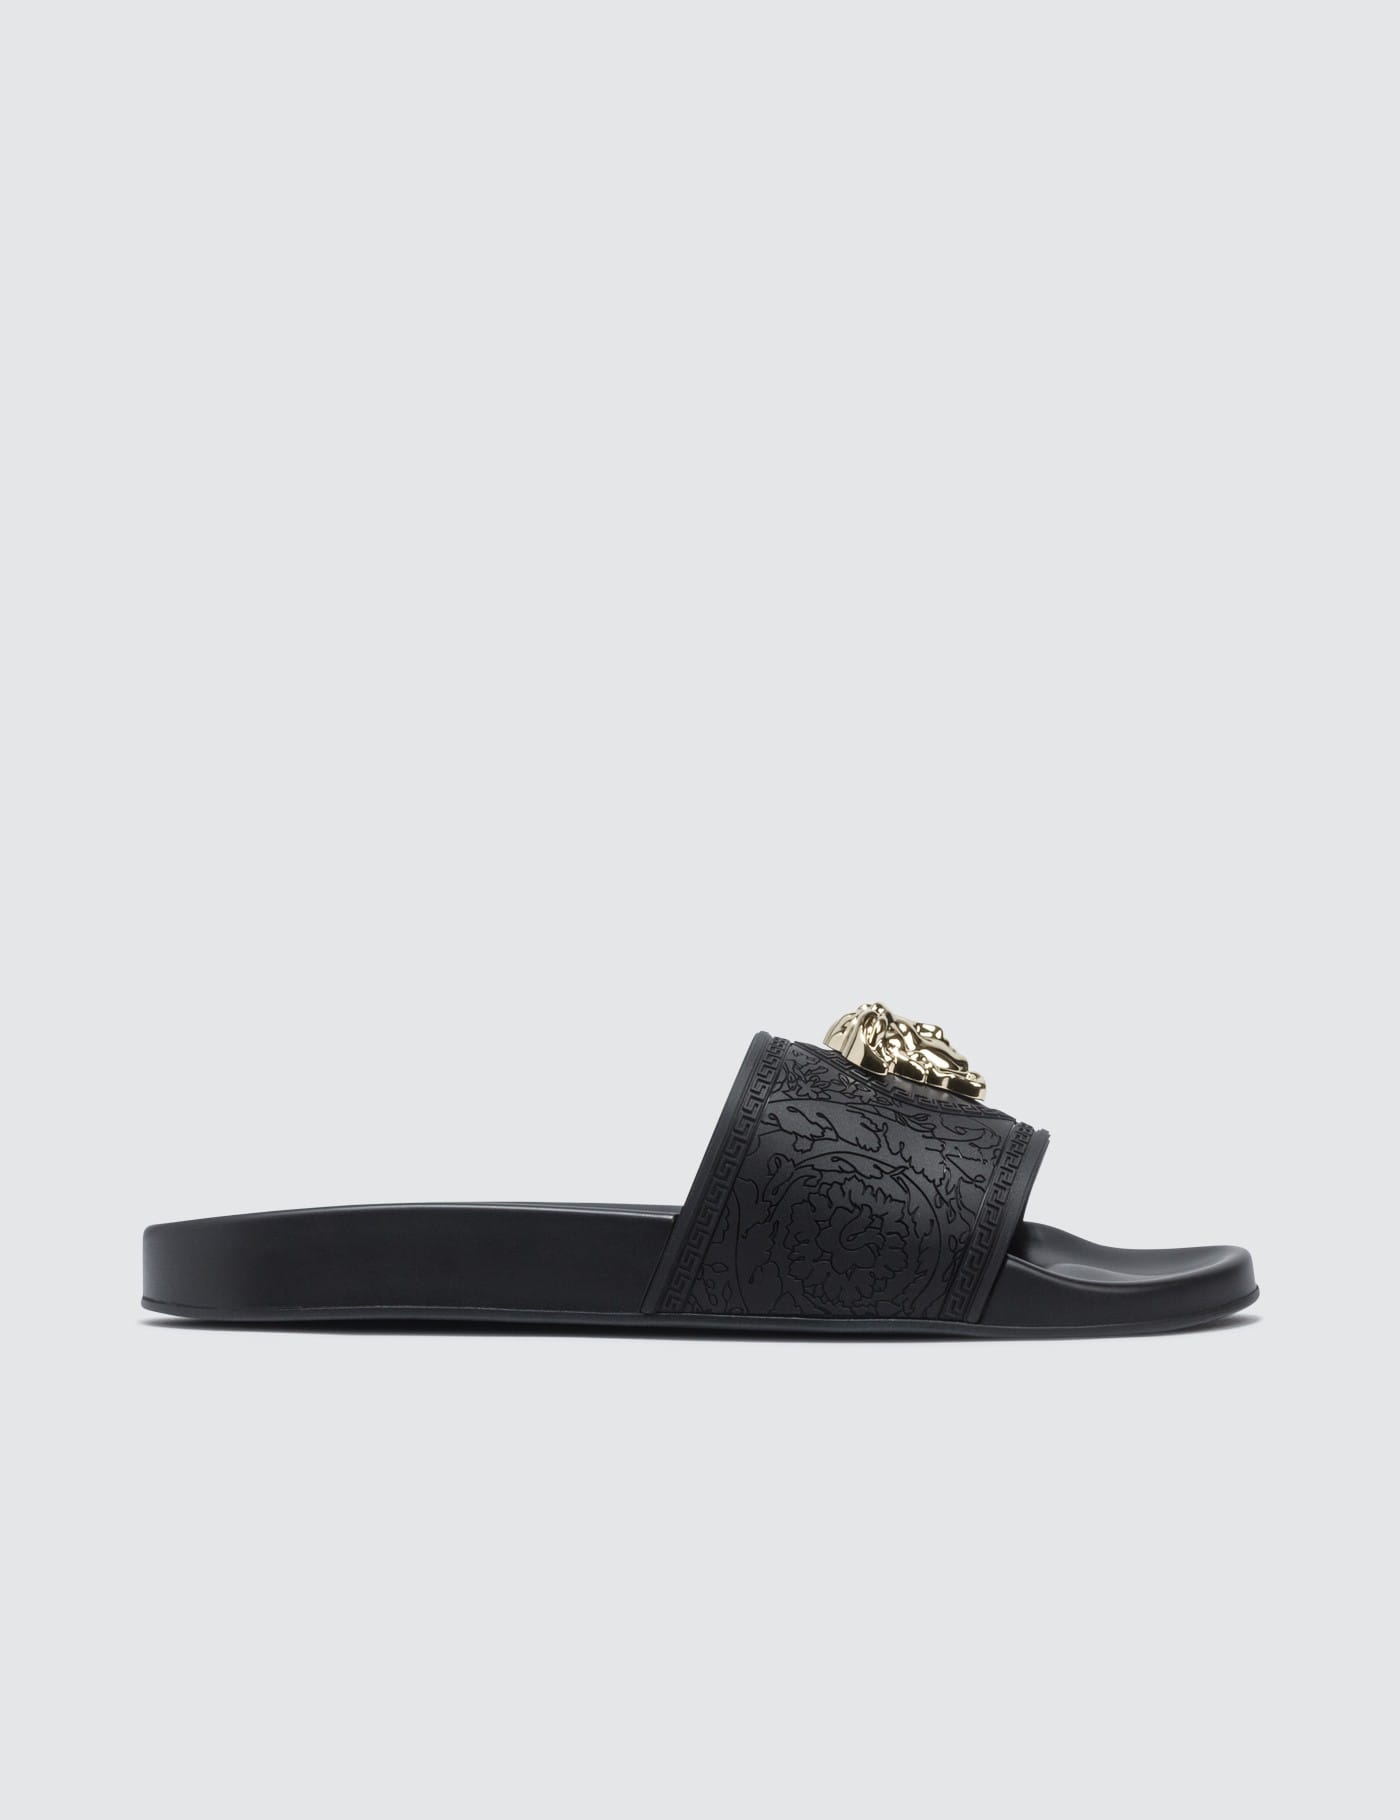 4234e62b3b Iconic Sliders, Versace